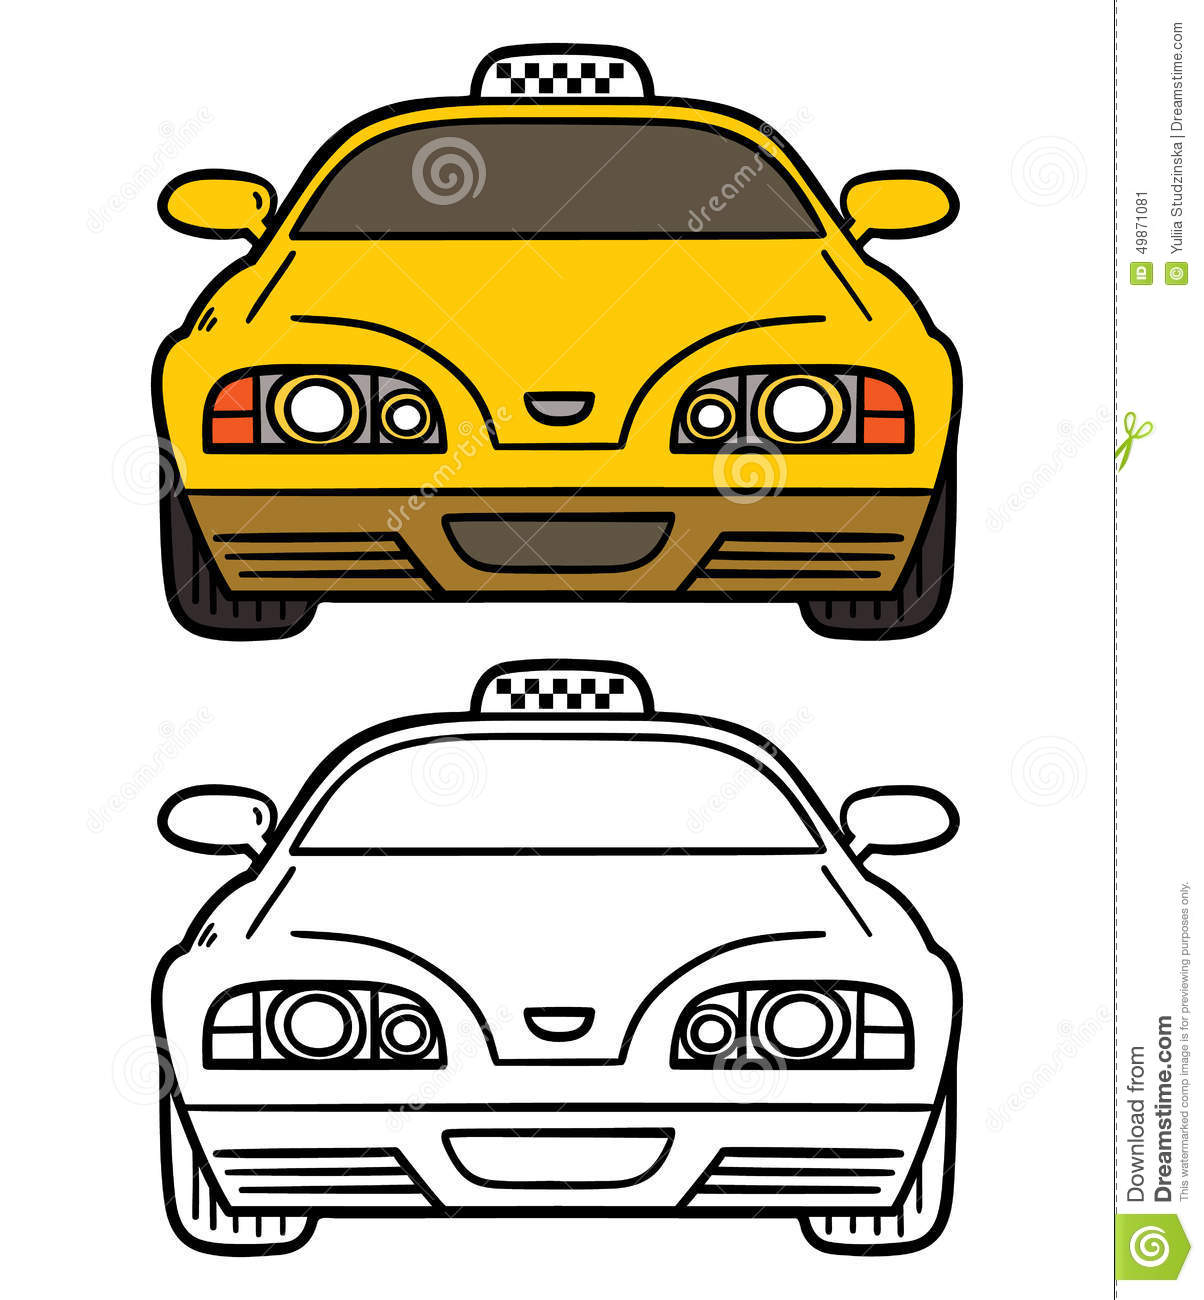 Stock Illustrations of Yellow Taxi - Classic, retro yellow ... |Yellow Taxi Cab Drawing